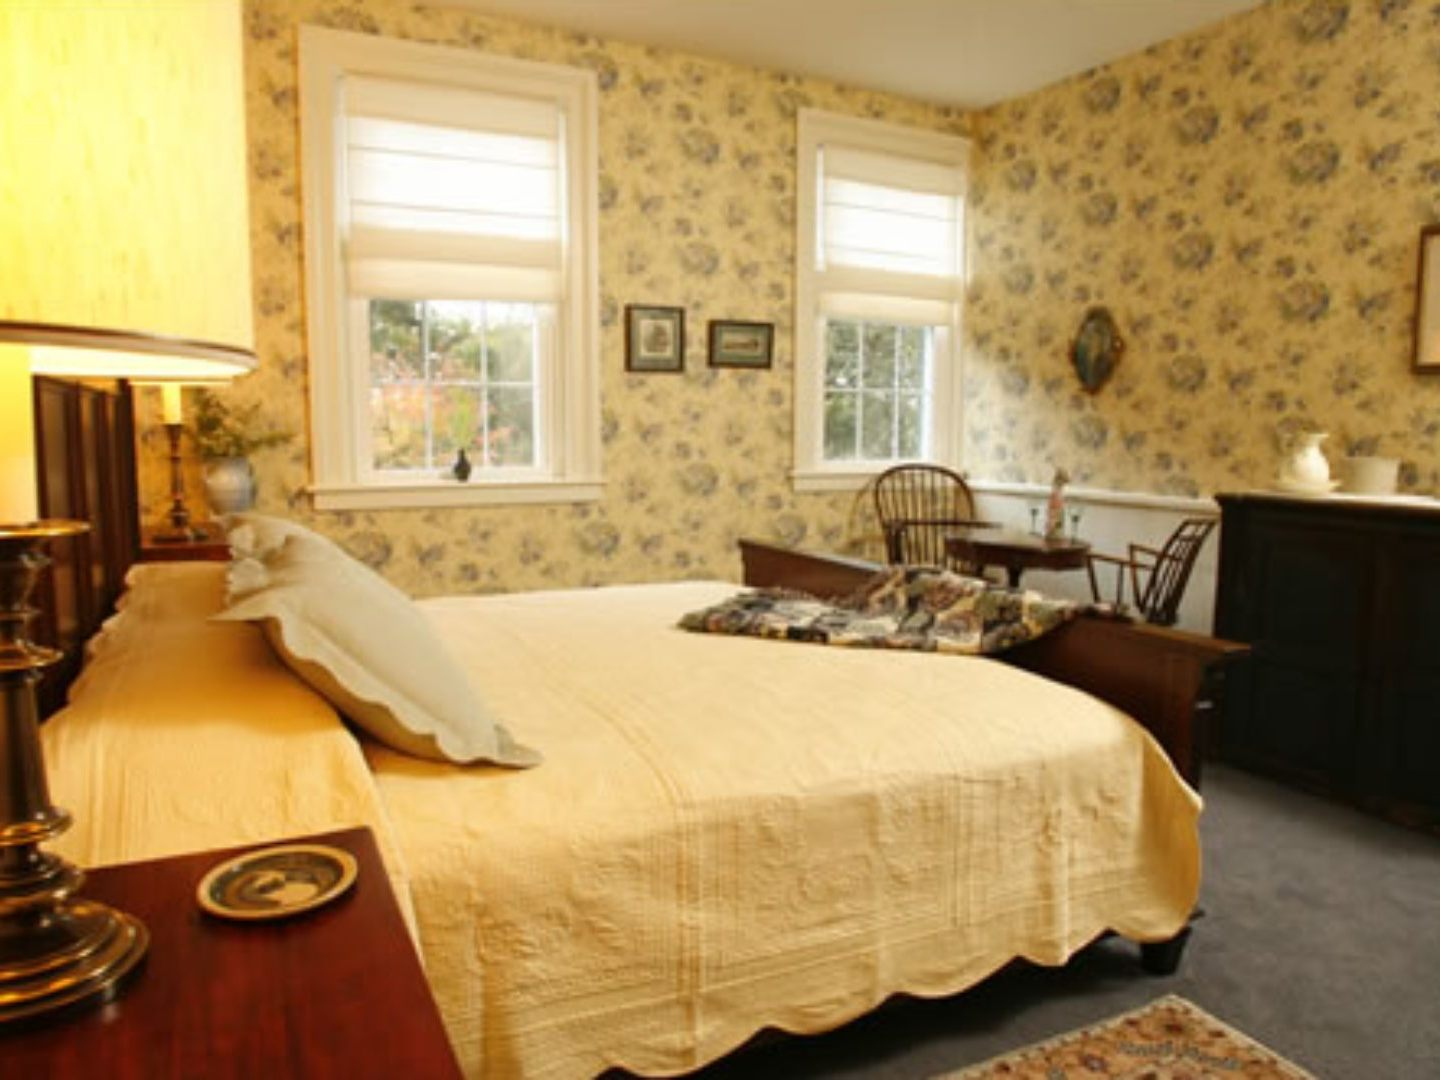 A bedroom with a bed and desk in a room at Temple Hill Bed & Breakfast.